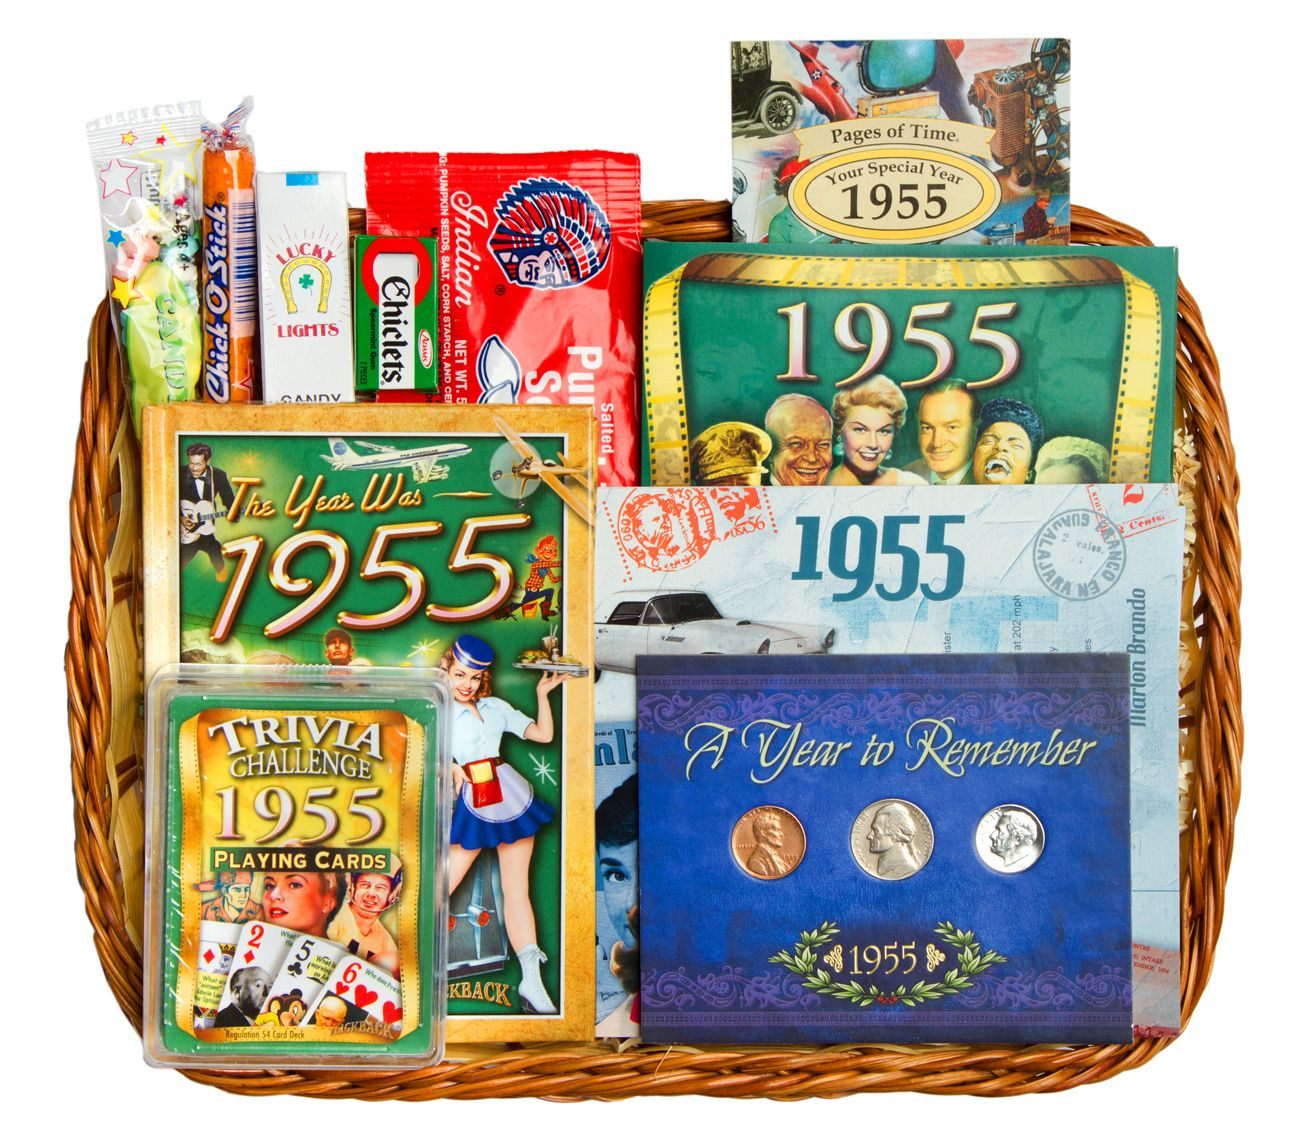 Wedding Party Gift Baskets: 60th Anniversary Or 60th Birthday Gift Basket For 1955